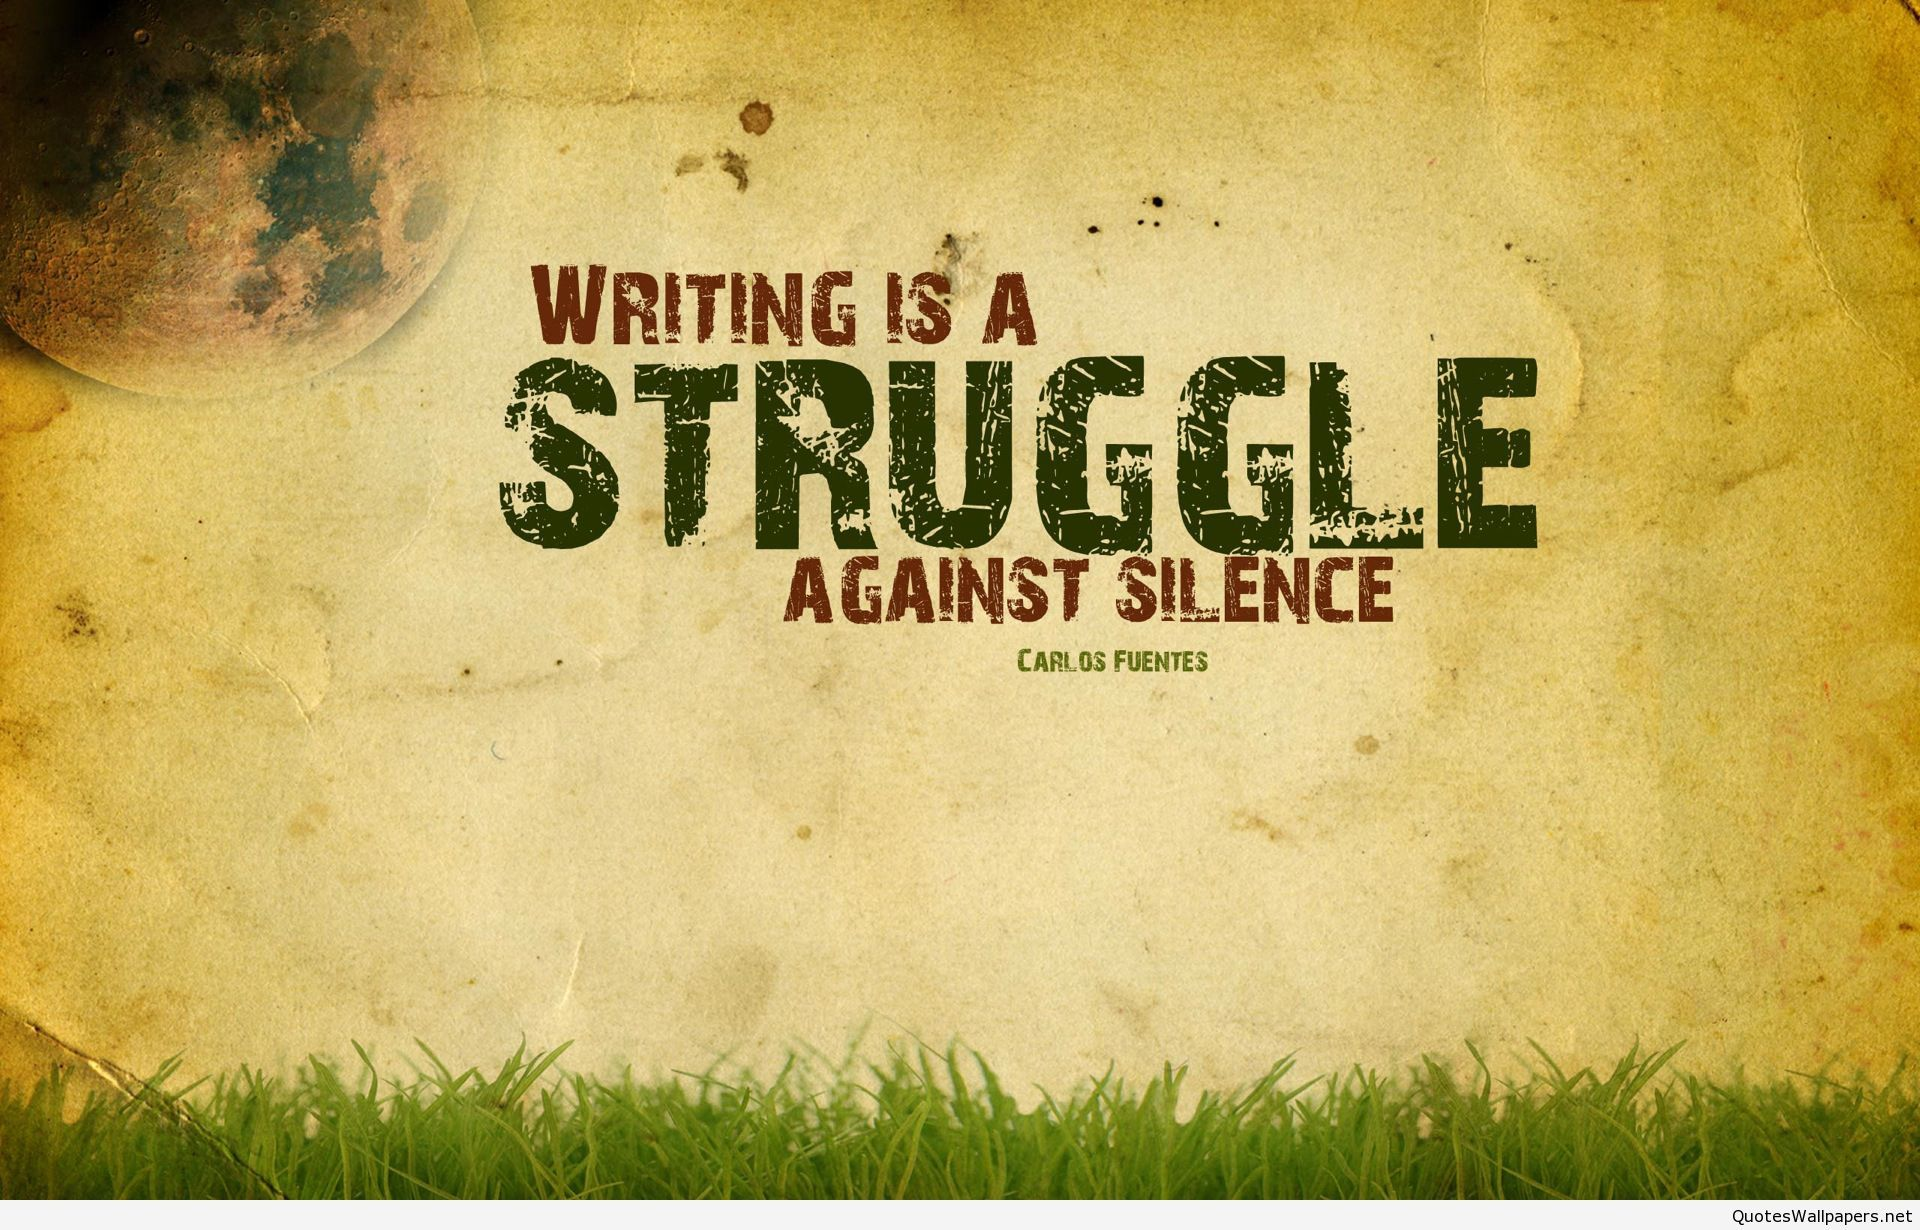 writing is a struggle quote wallpaper hd | www.quotespics